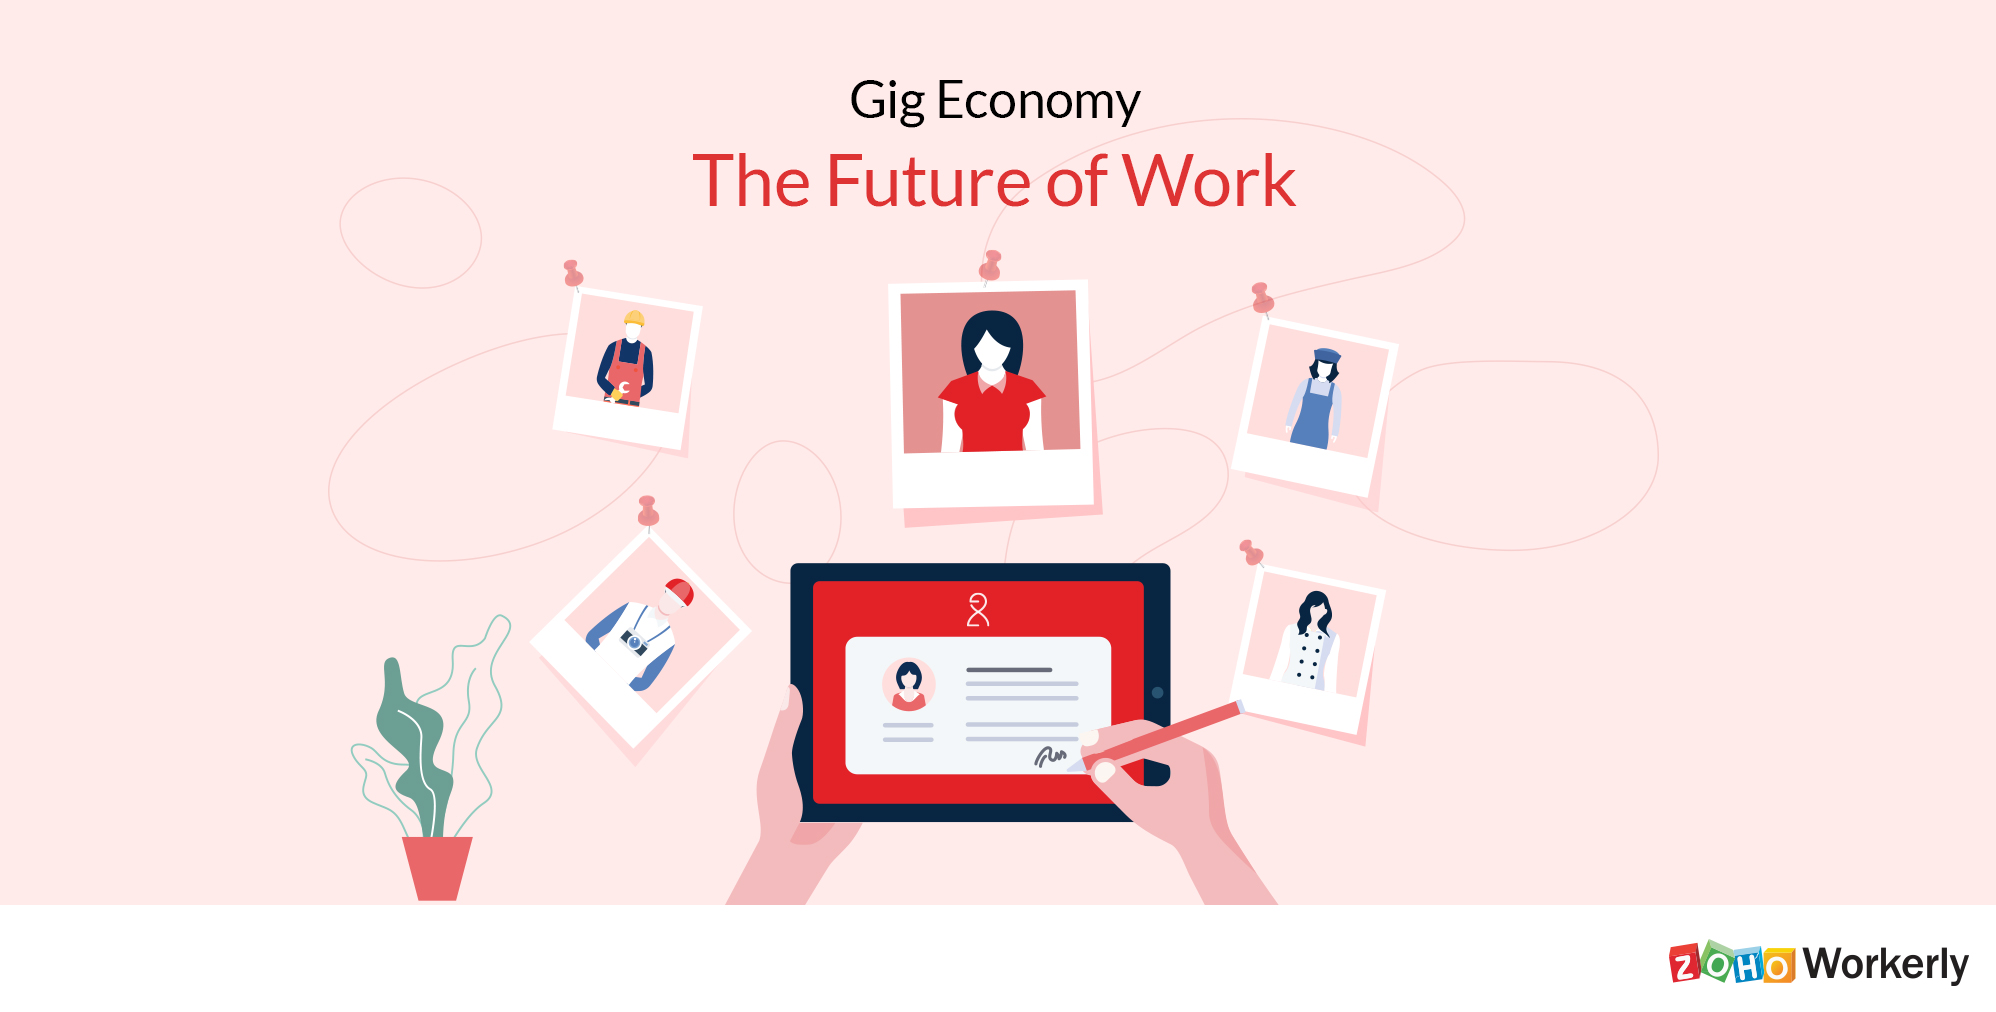 The right tool for tackling the gig economy.